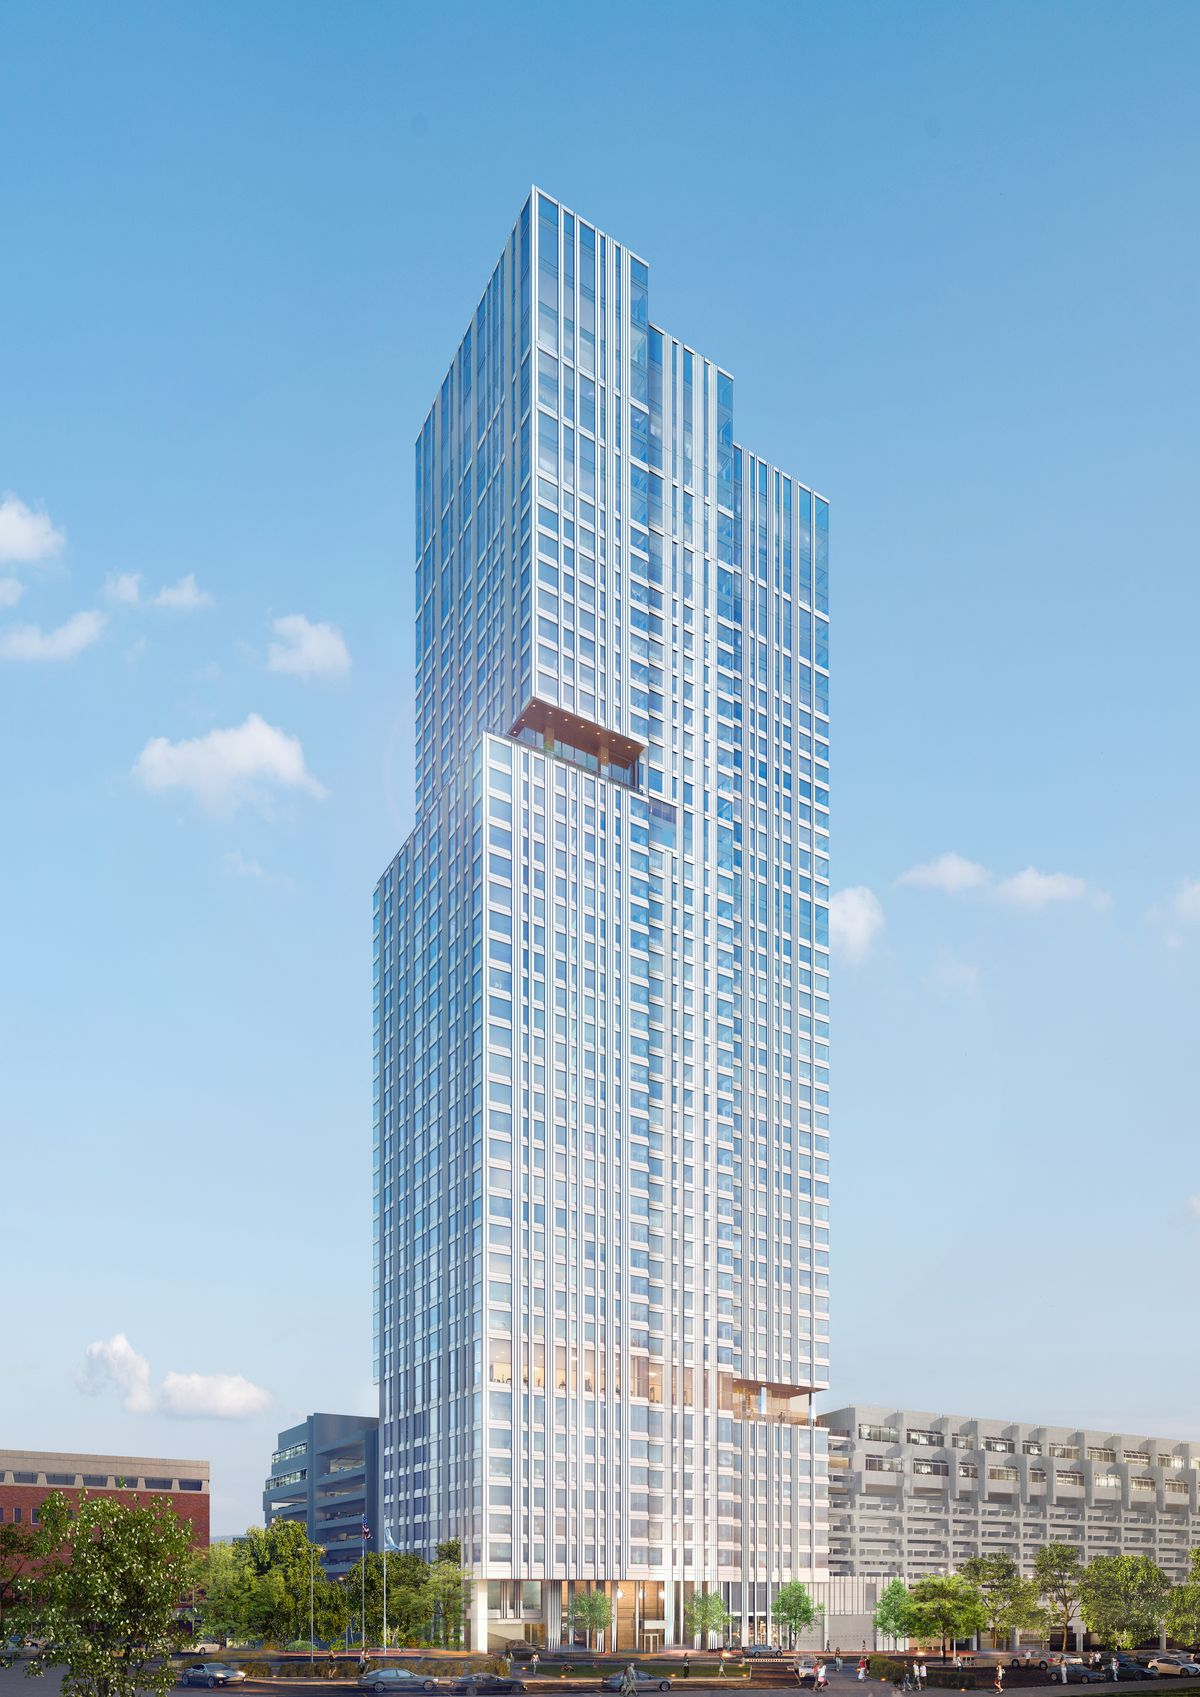 Rendering of a 46-story, glassy tower.